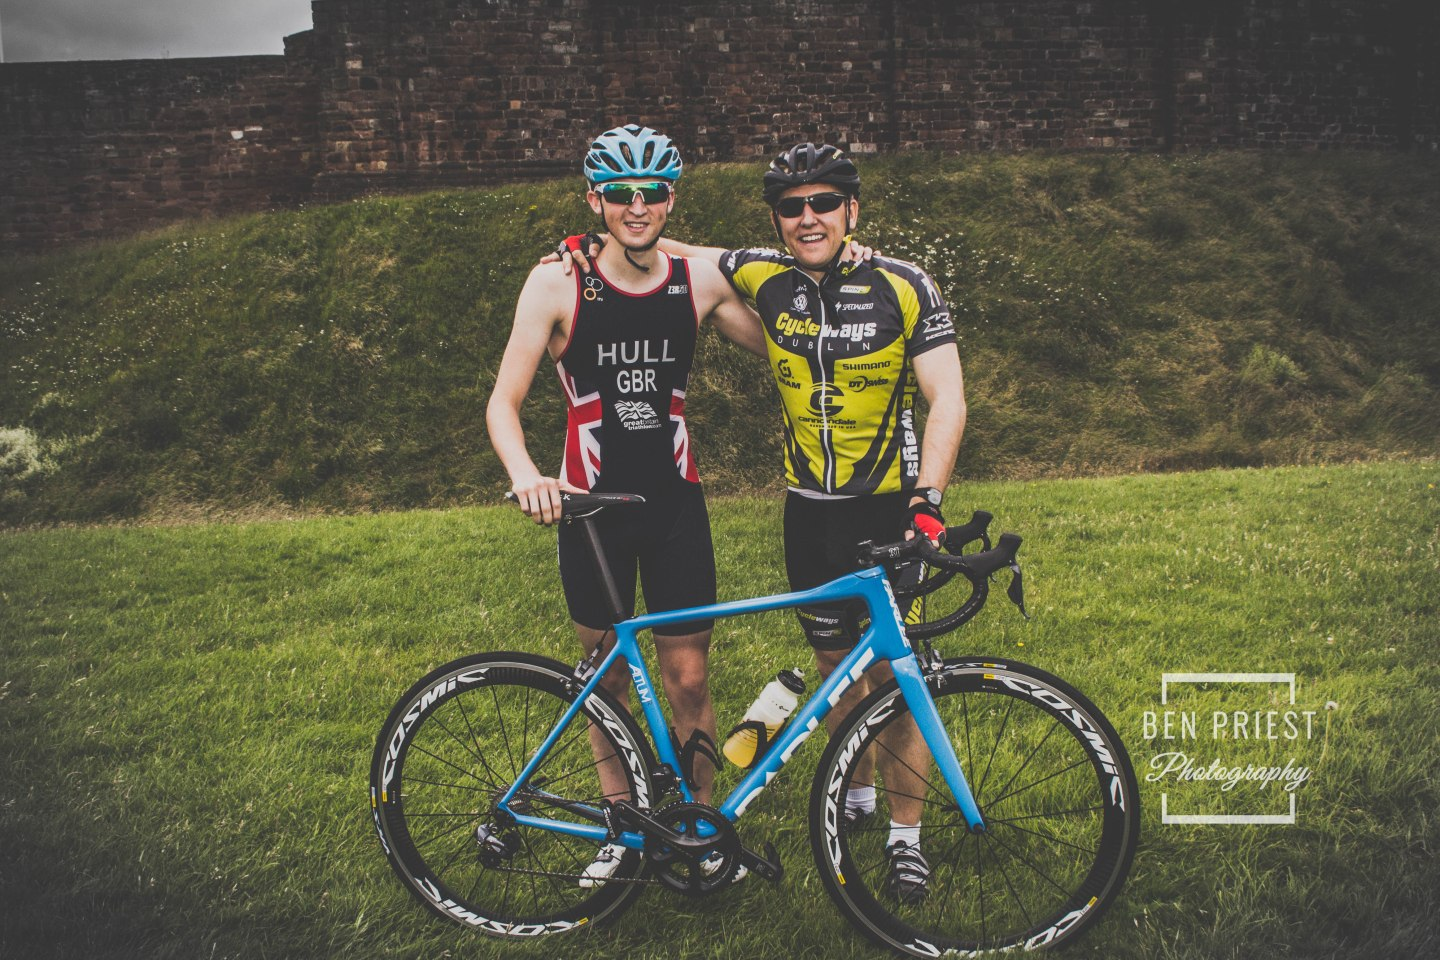 Team GB Triathlete – Jordan Hull – Cumbrian Ambassador for the World Health Innovation Summit, with Gareth Presch no.6